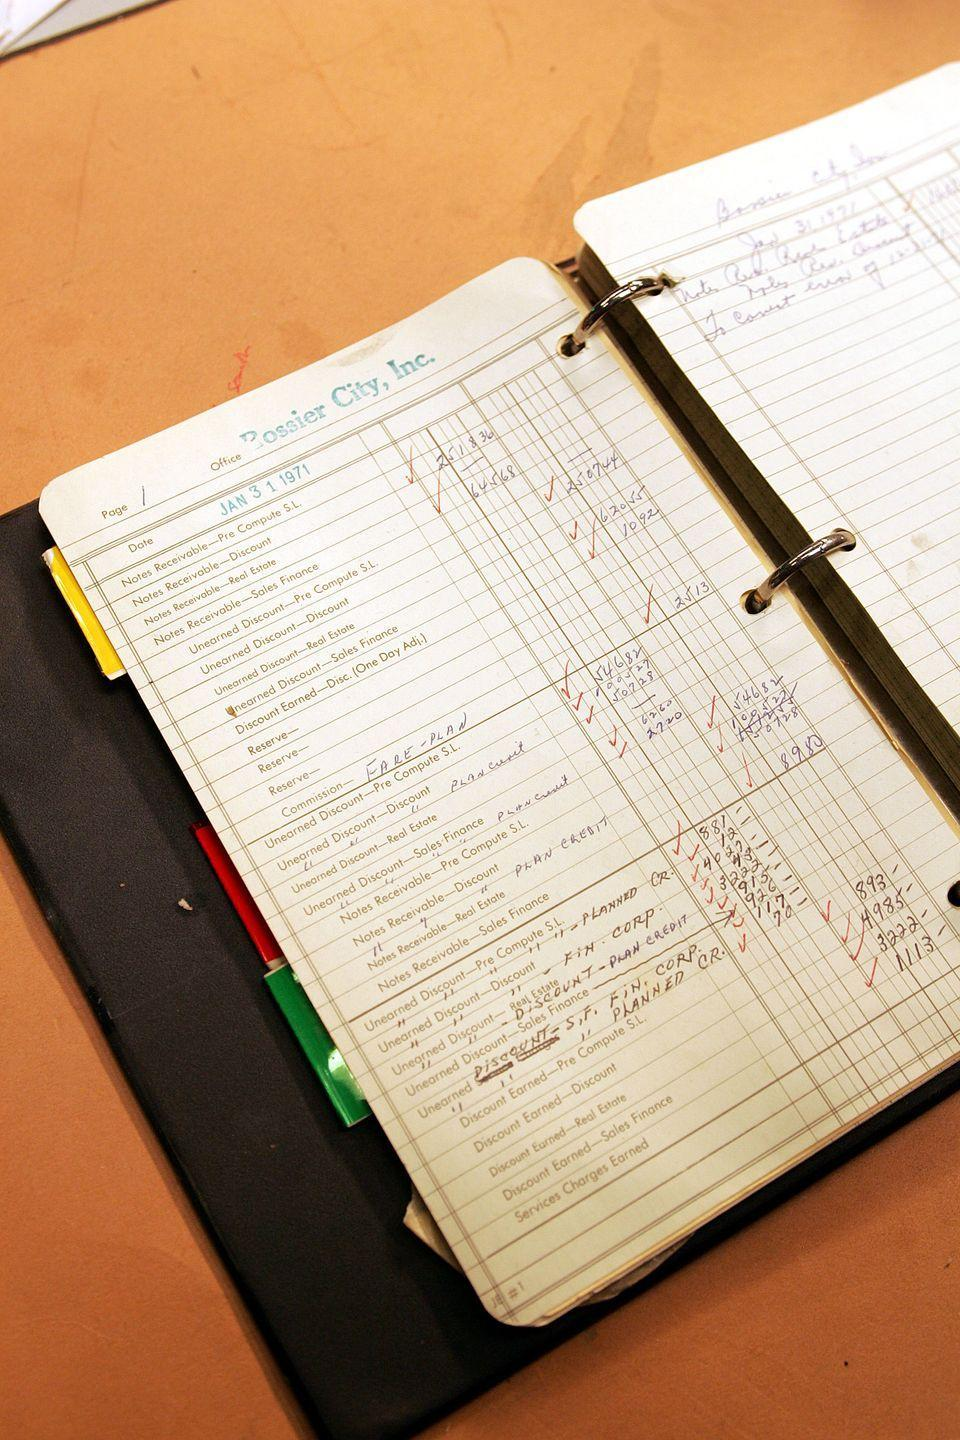 <p>Attention to detail was everything on the Sopranos set, even down to the smallest props. Here's the accounting book used in the Bada Bing!</p>